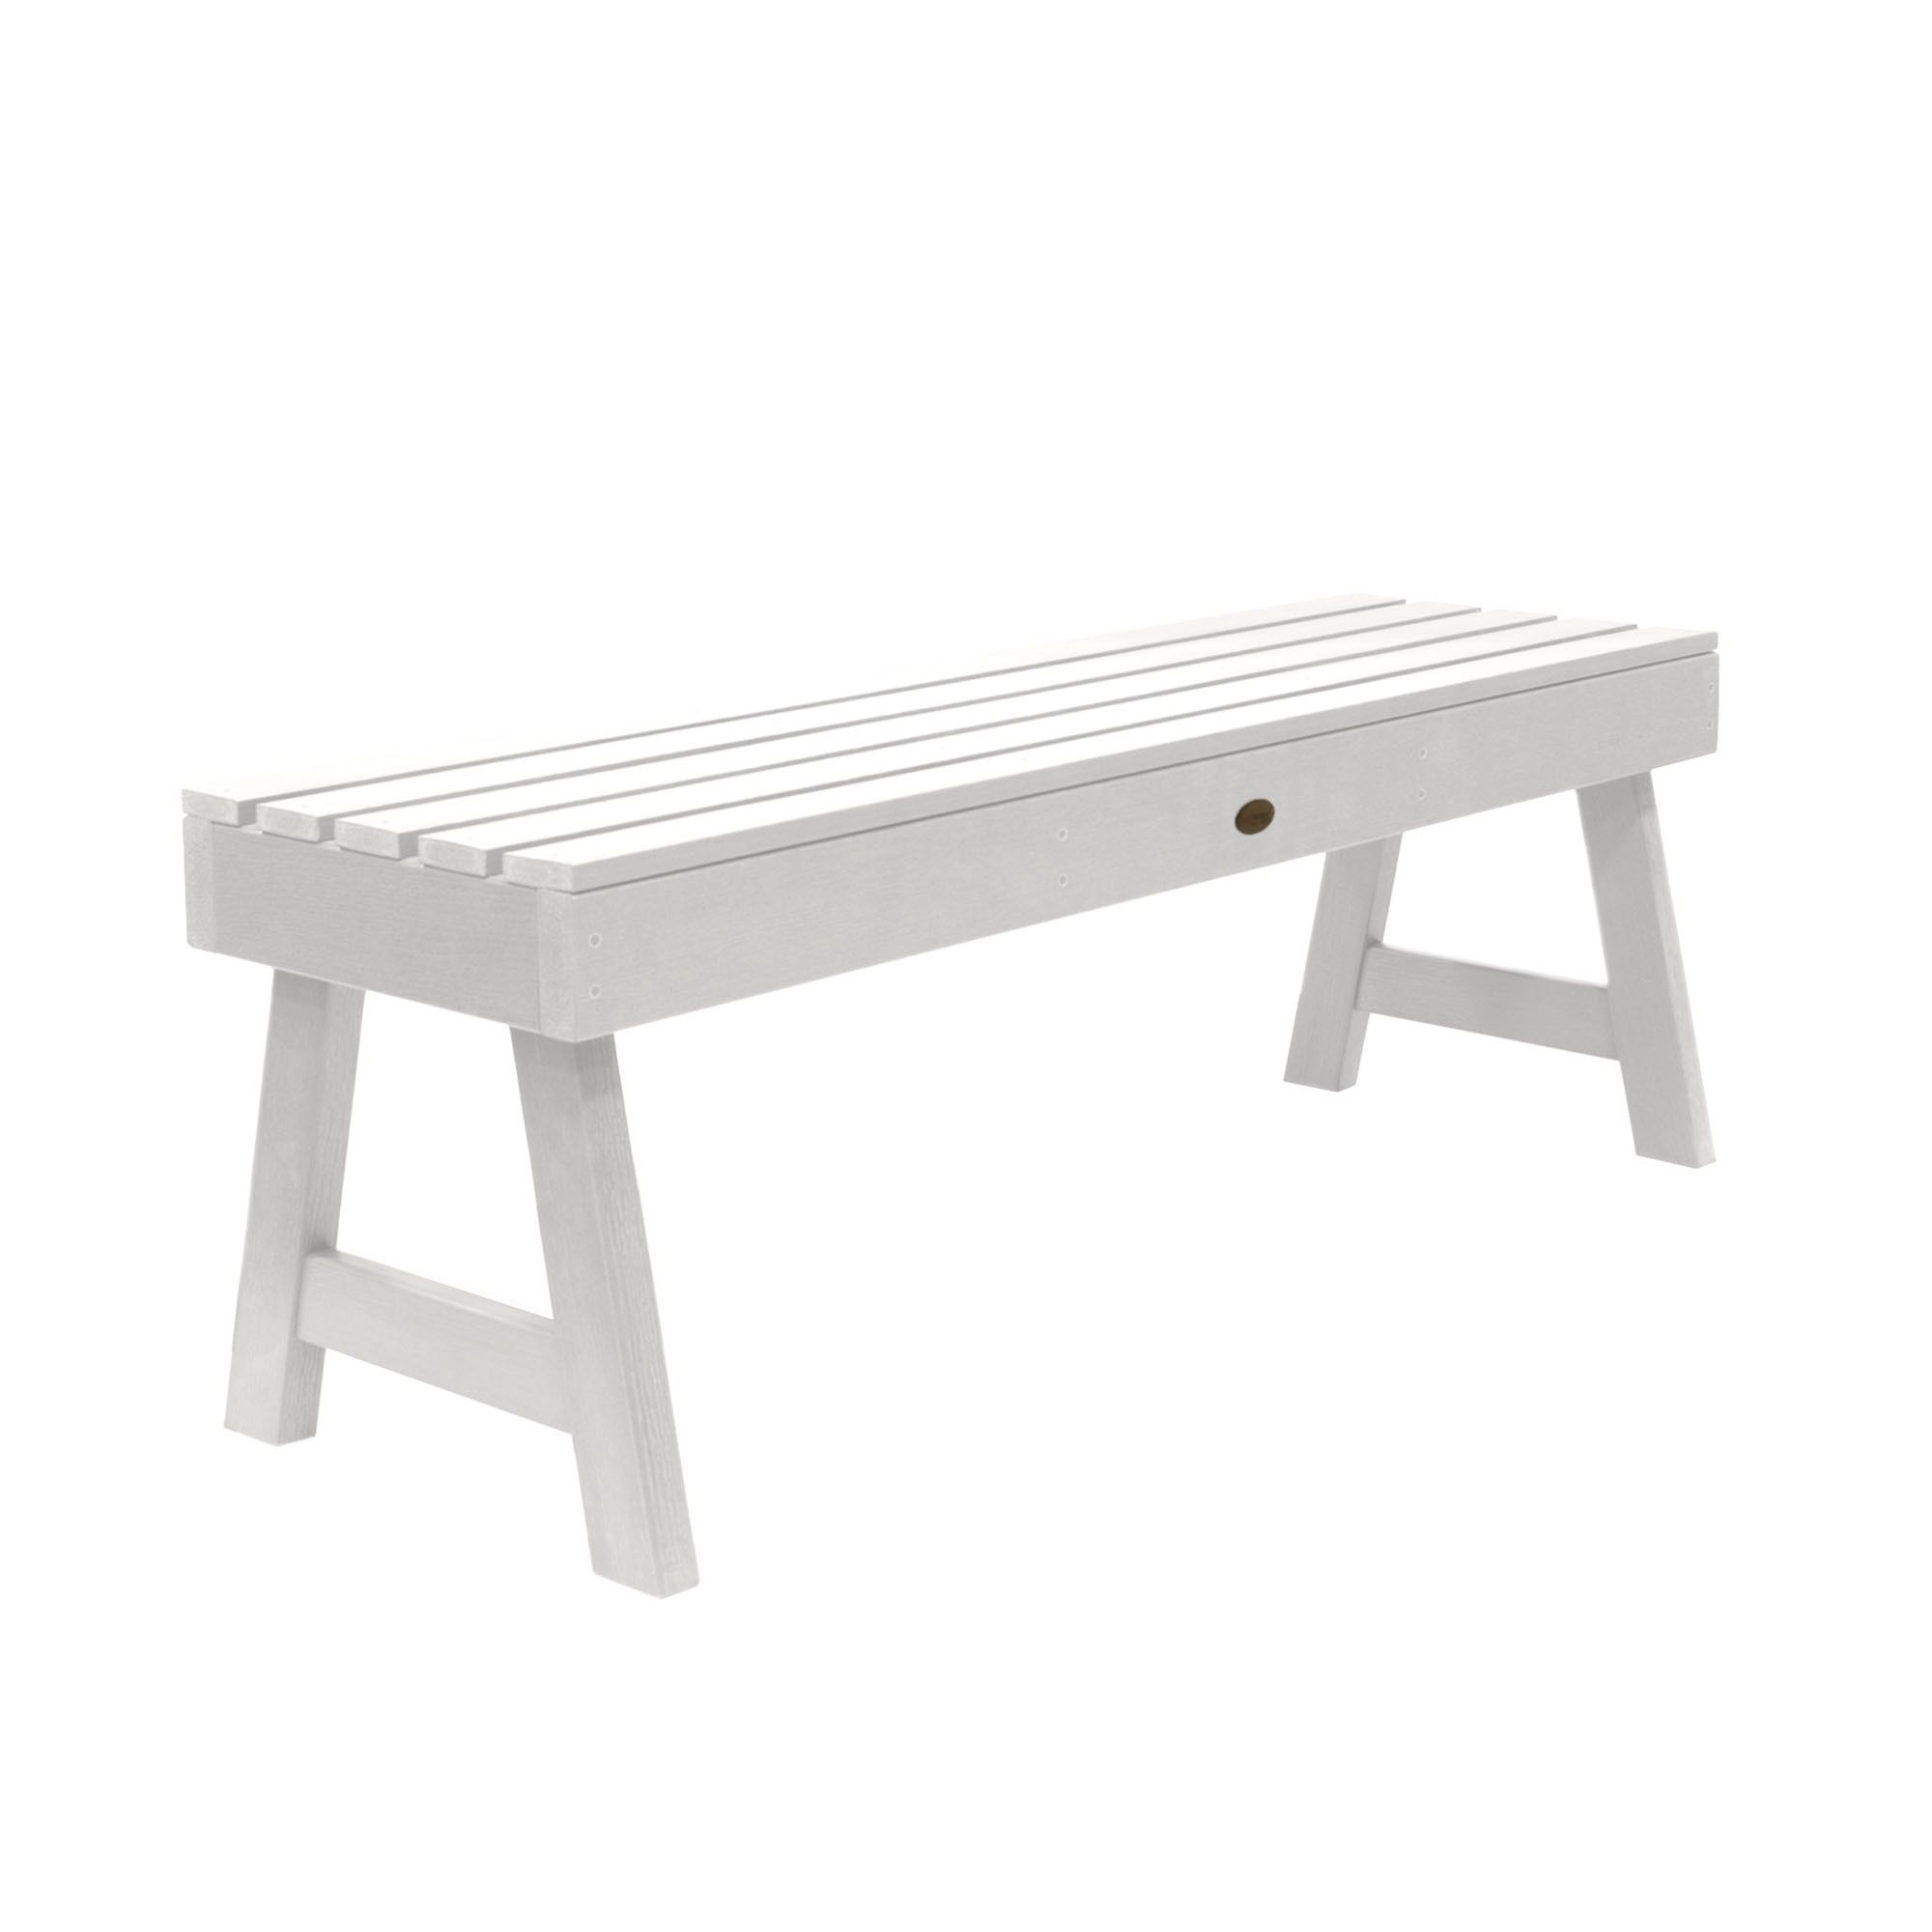 Swell Weatherly Picnic Bench 4Ft White Highwood Products Ibusinesslaw Wood Chair Design Ideas Ibusinesslaworg